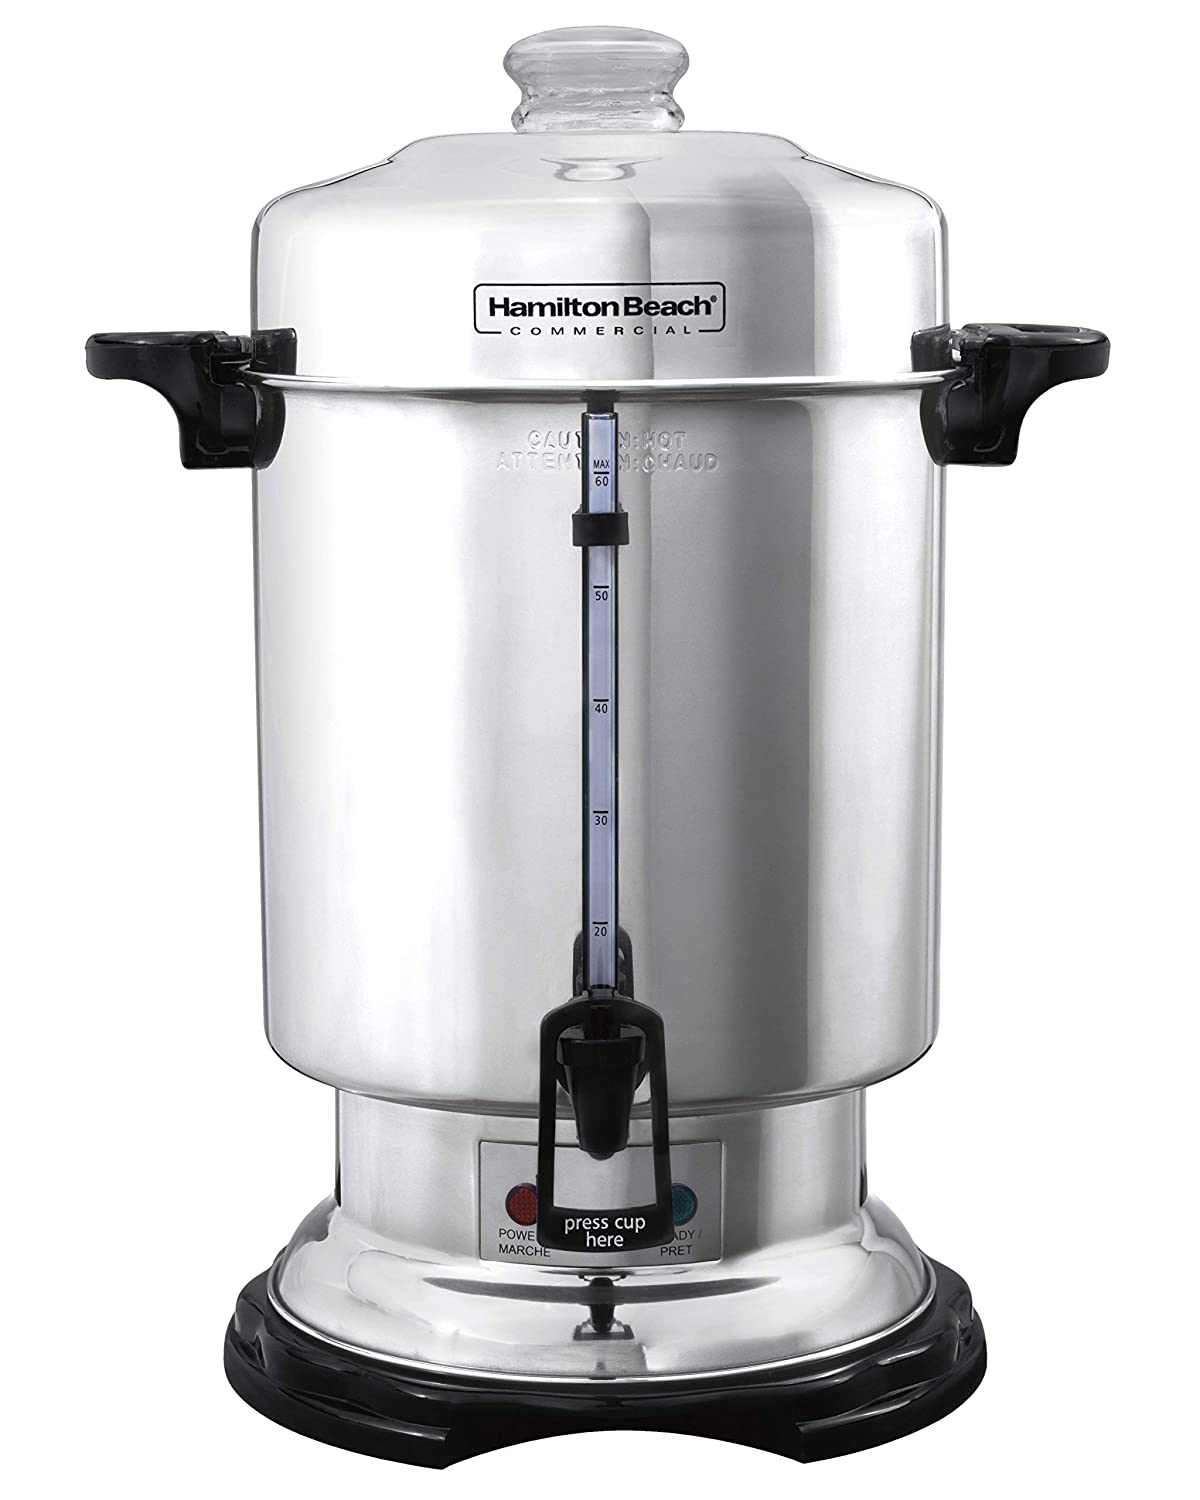 Hamilton Beach D50065 Commercial 60-Cup Stainless-Steel Coffee Urn, Silver (Renewed)